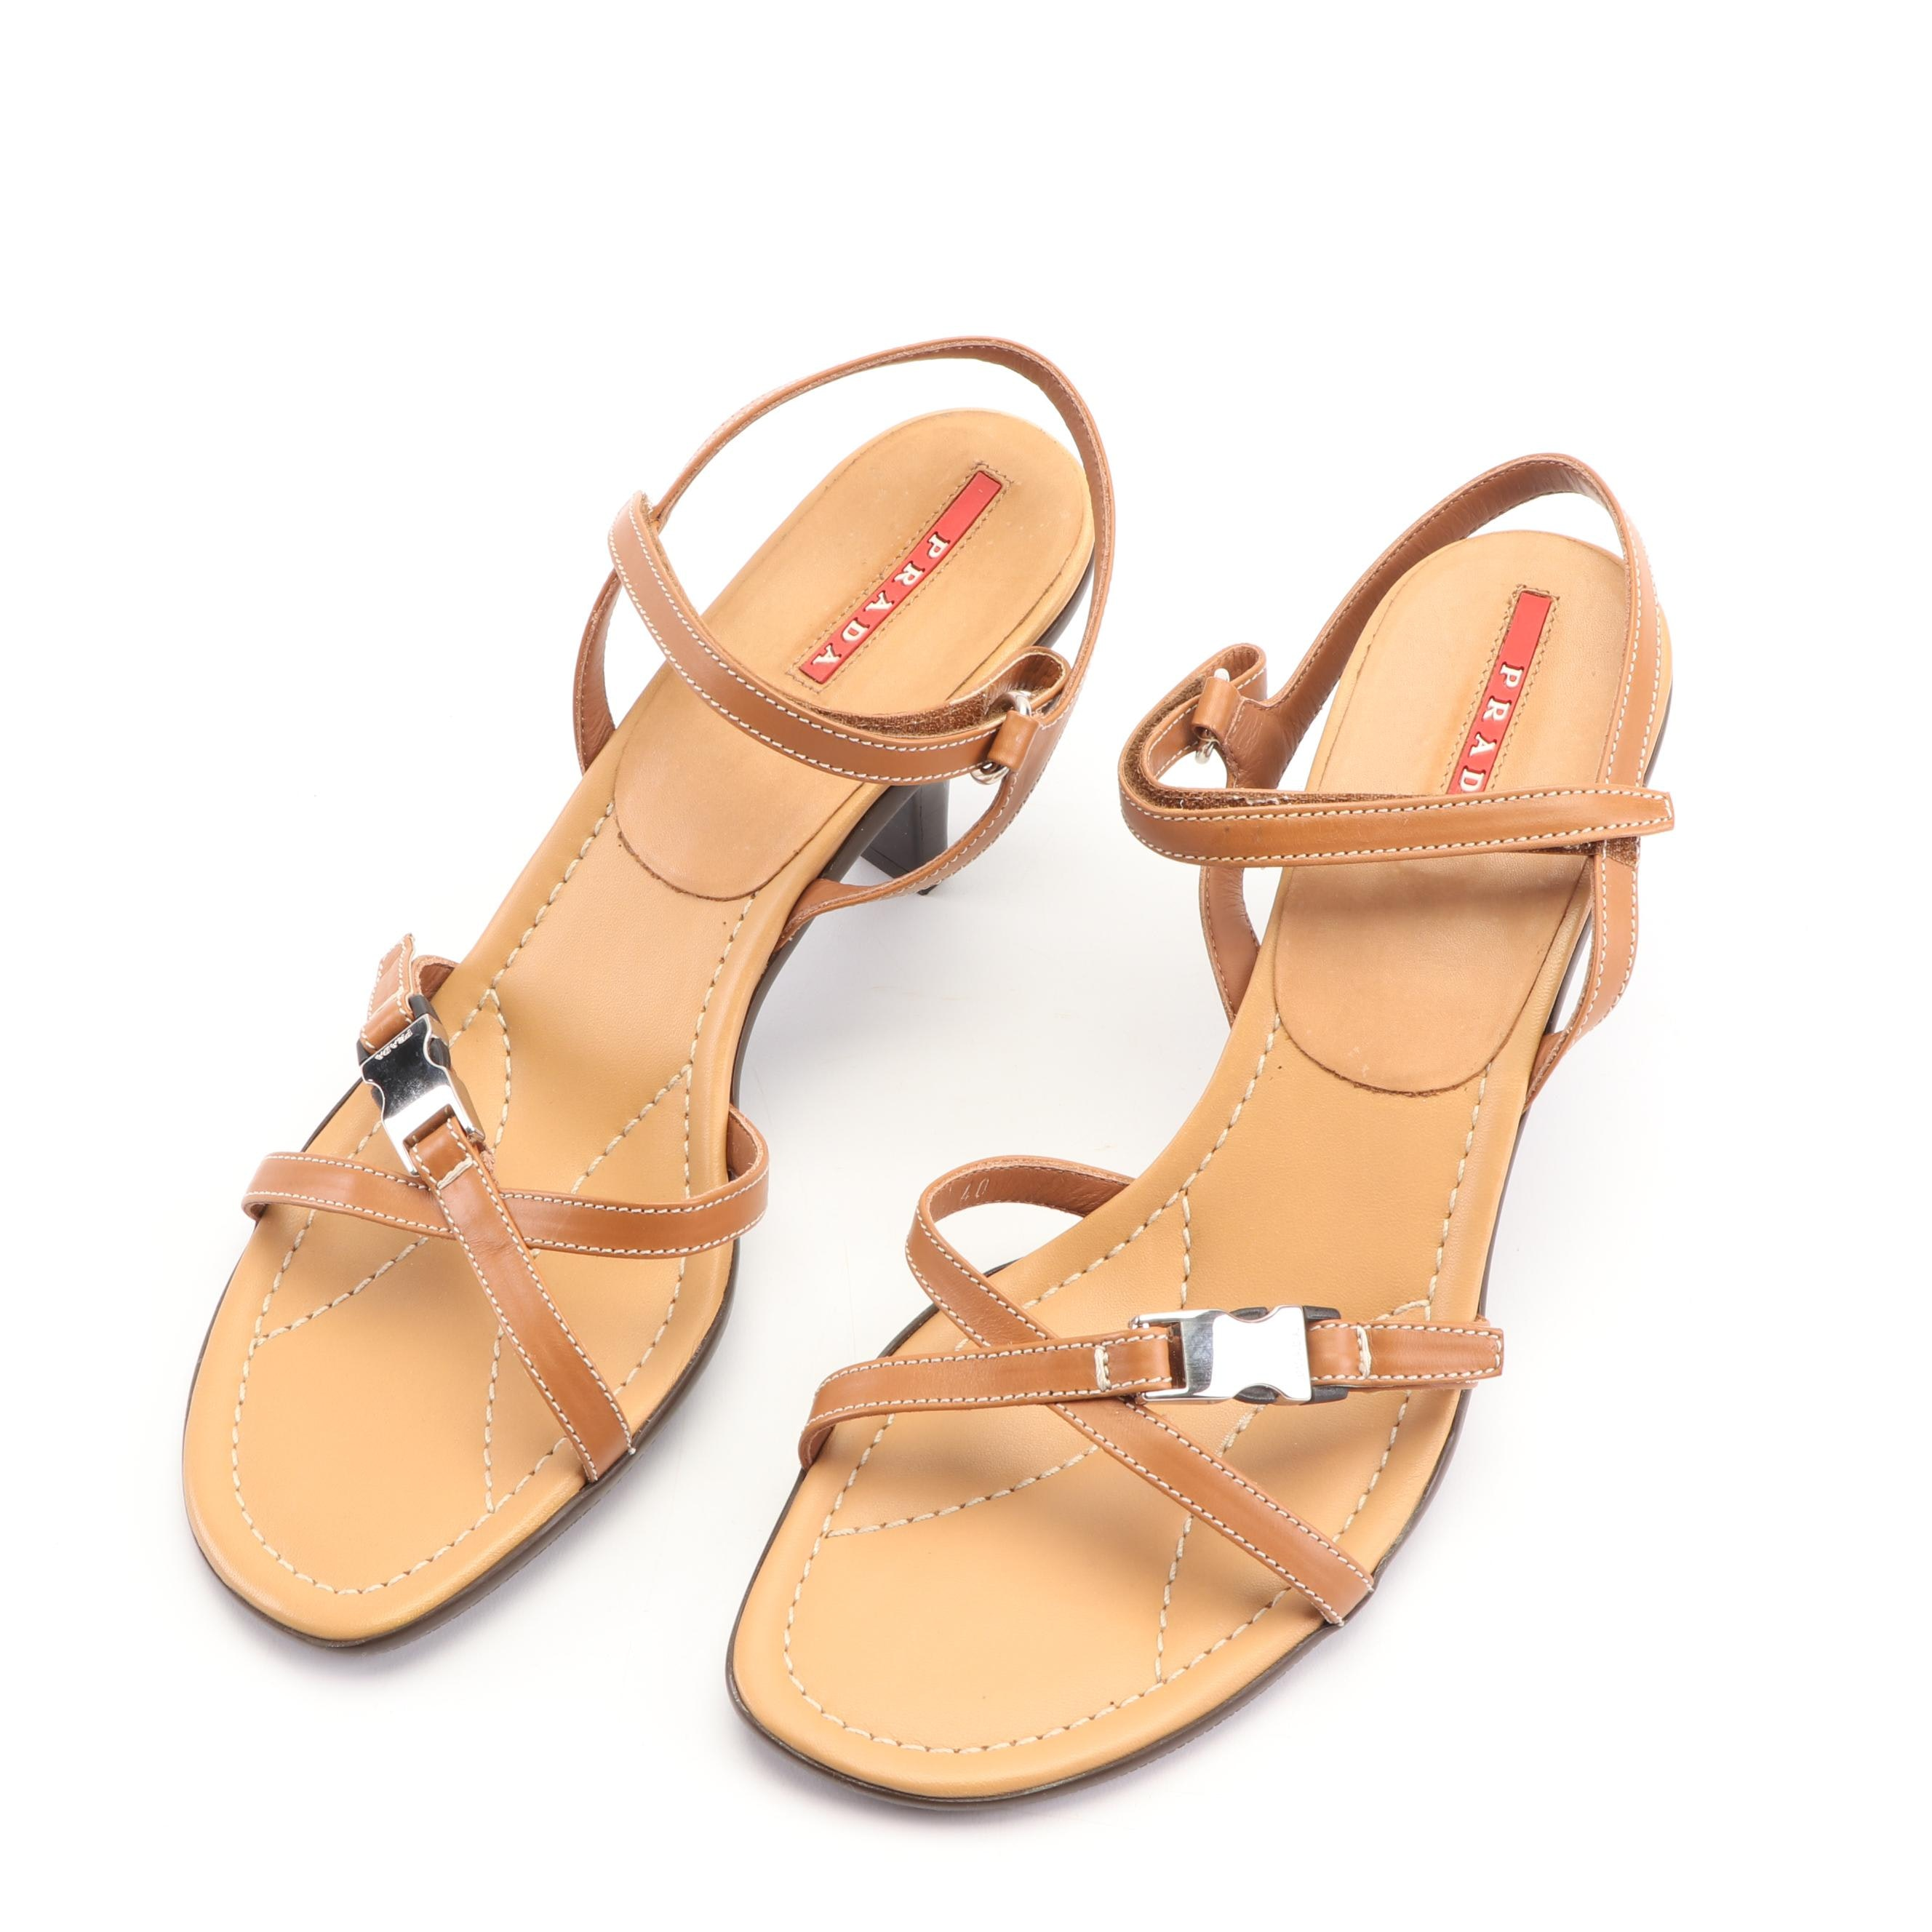 Prada Tan Leather Strappy Sandals with Buckle Accents, Made in Italy